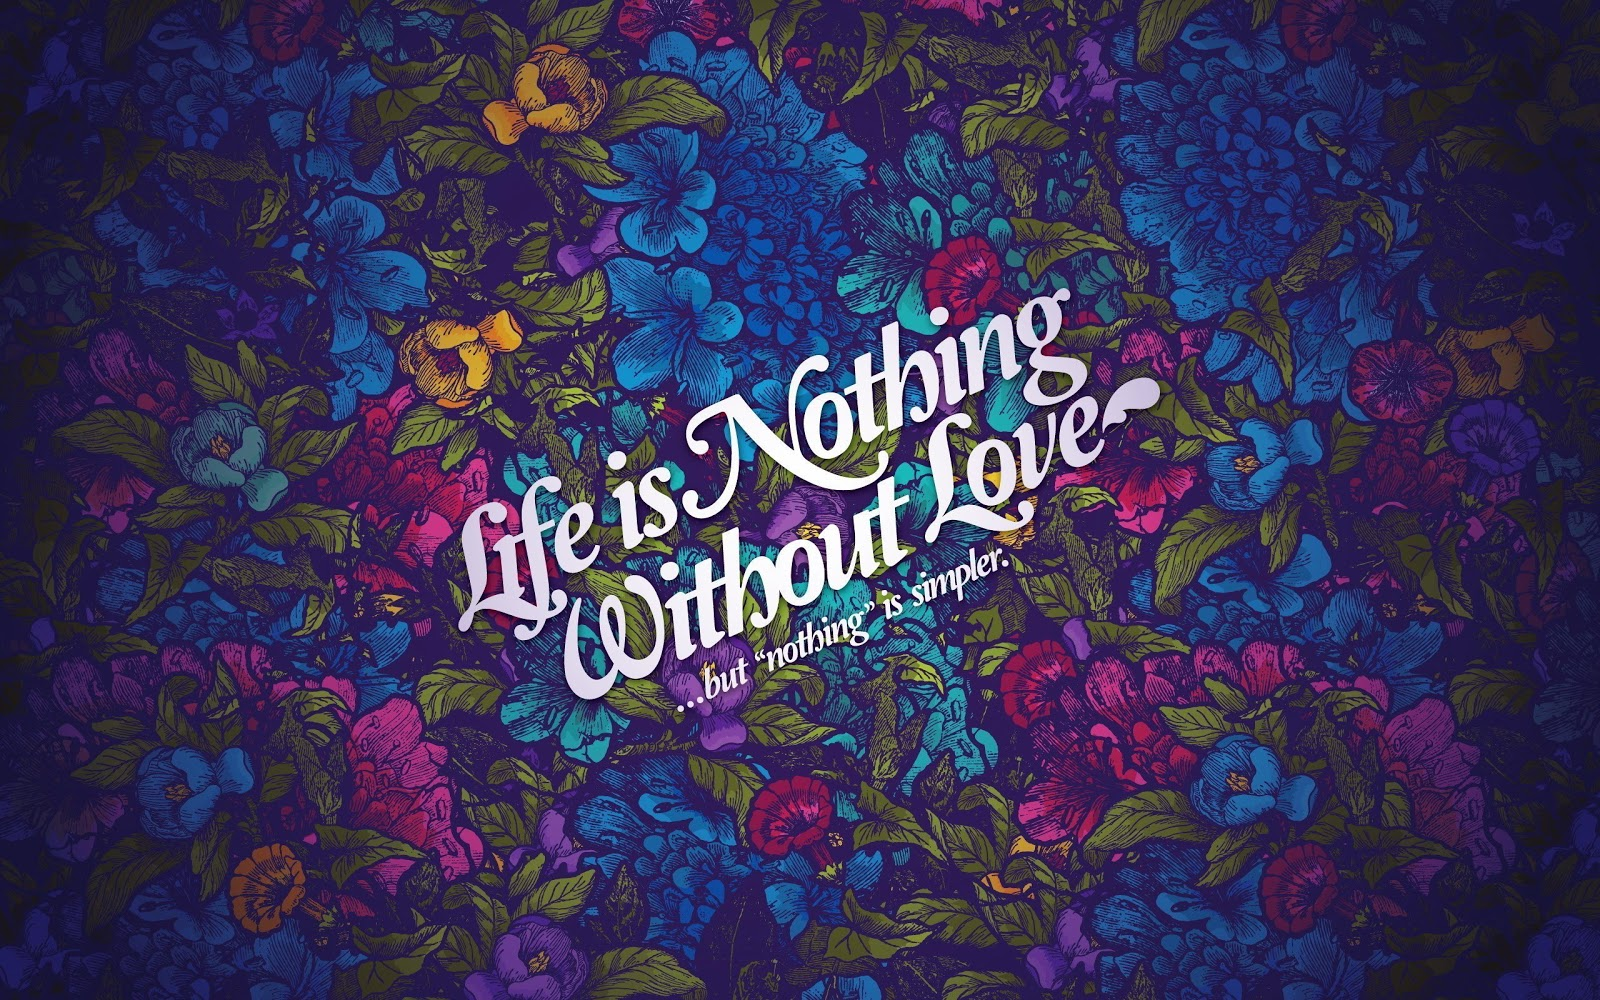 Bangla Love Wallpaper Hd : HD Wallpaper Download: Love HD Wallpapers - Life Nothing Without Love